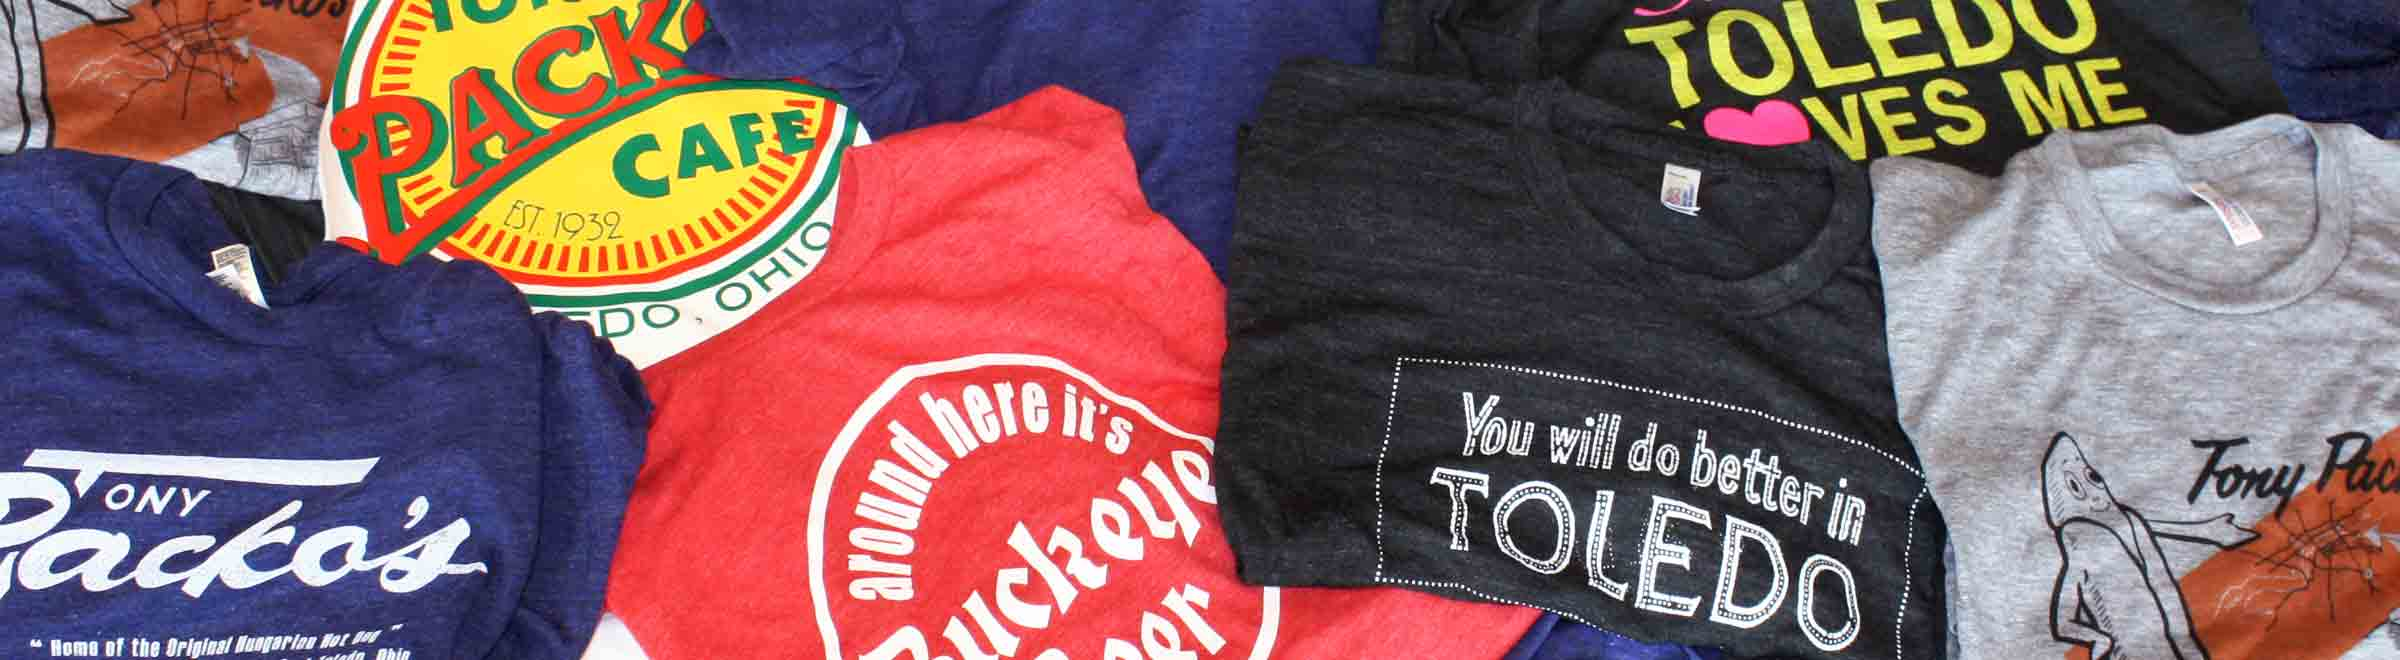 Black Somebody in Toledo Love Me, Dark Blue Tony Packos & Dark Blue TOLEDO t-shirt close-ups